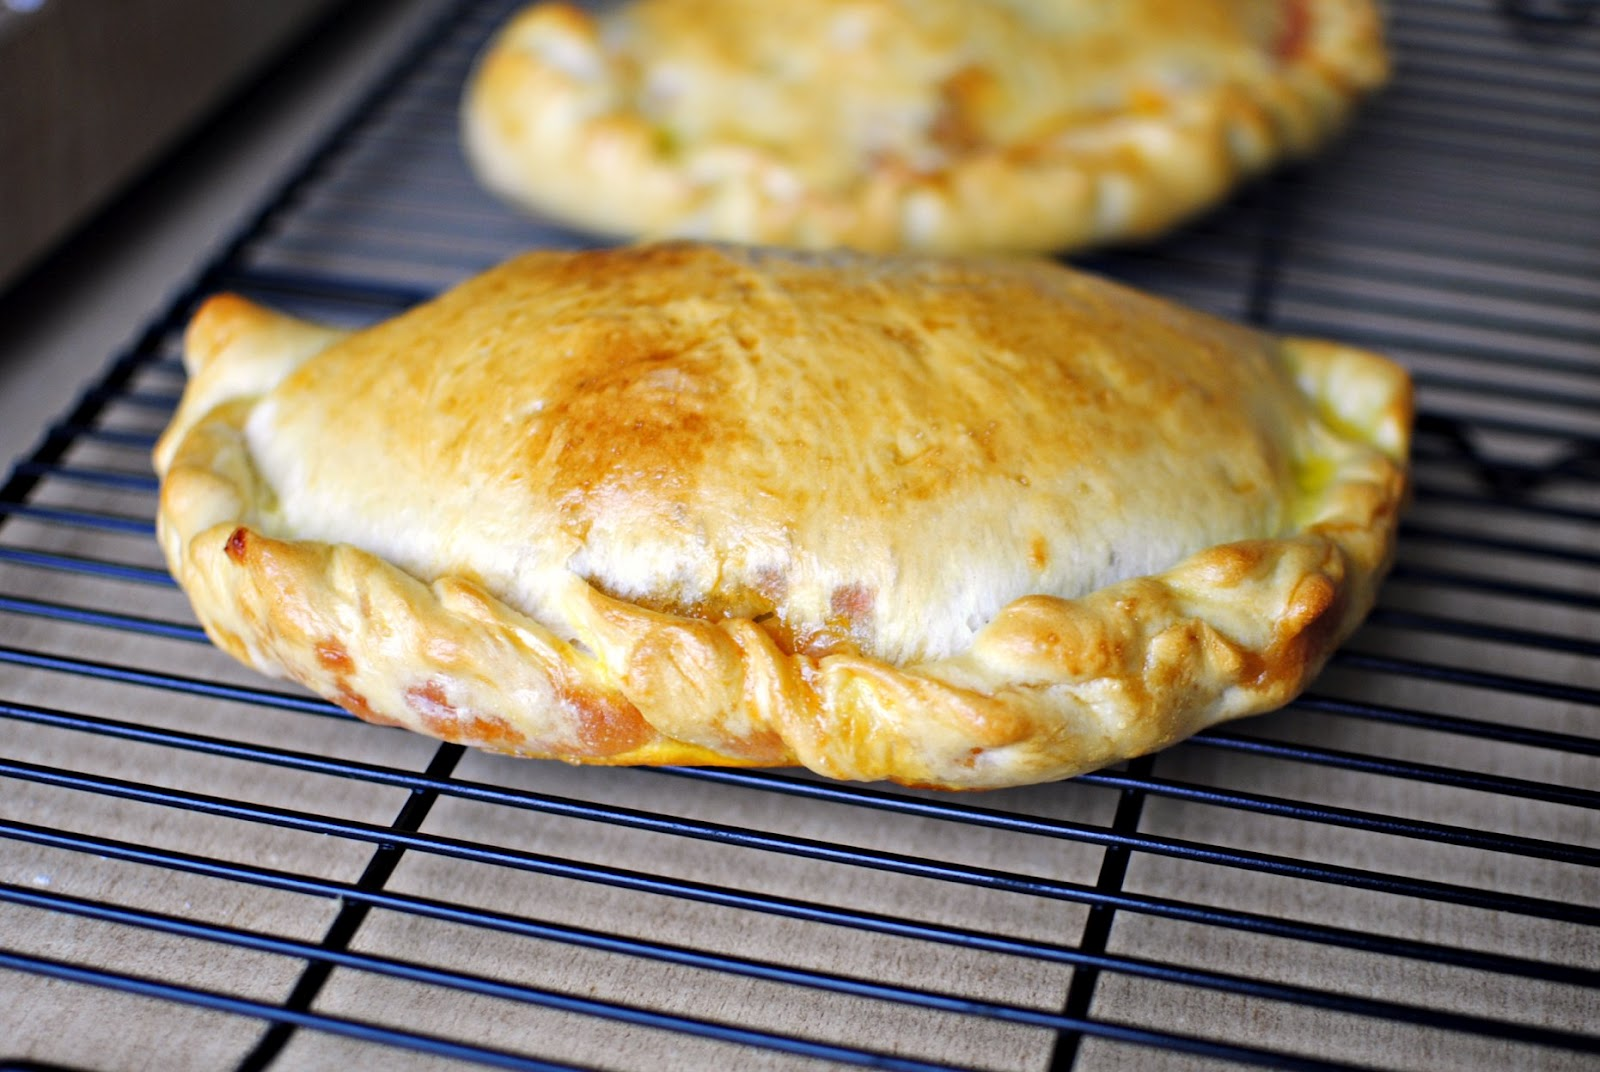 Simply Scratch Homemade Pizza Calzones - Simply Scratch